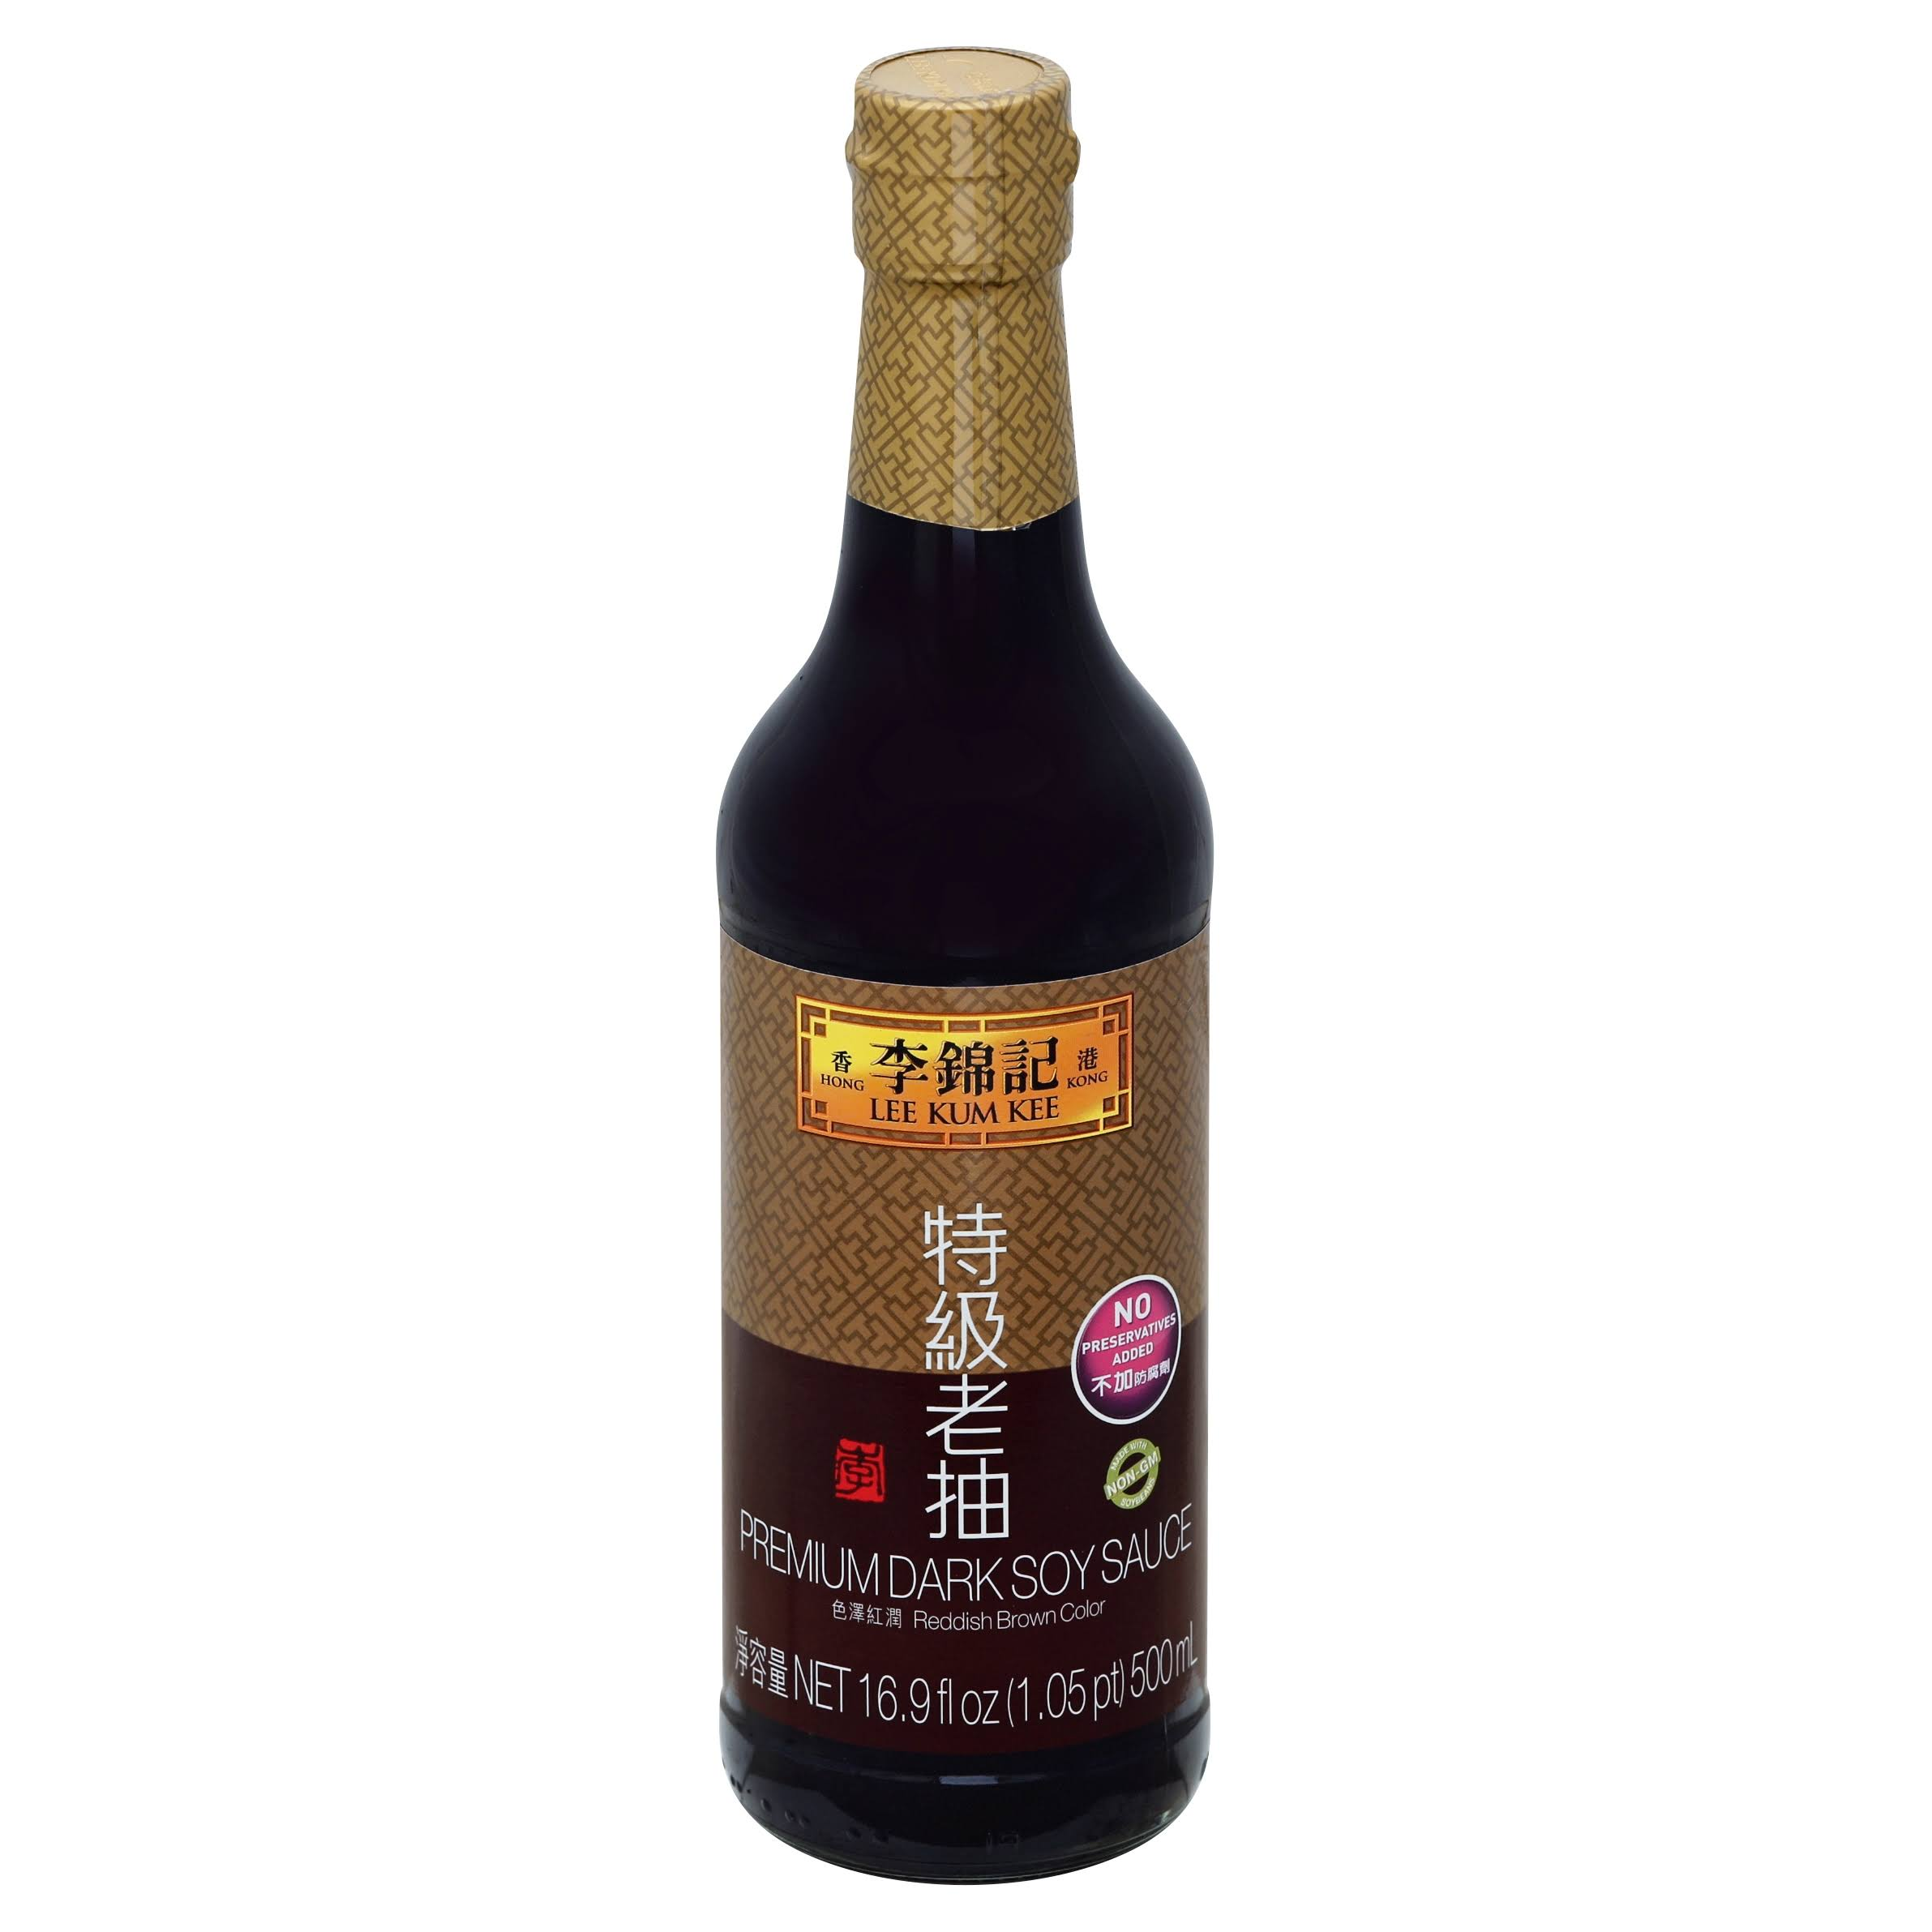 Lee Kum Kee Premium Dark Soy Sauce - 500ml